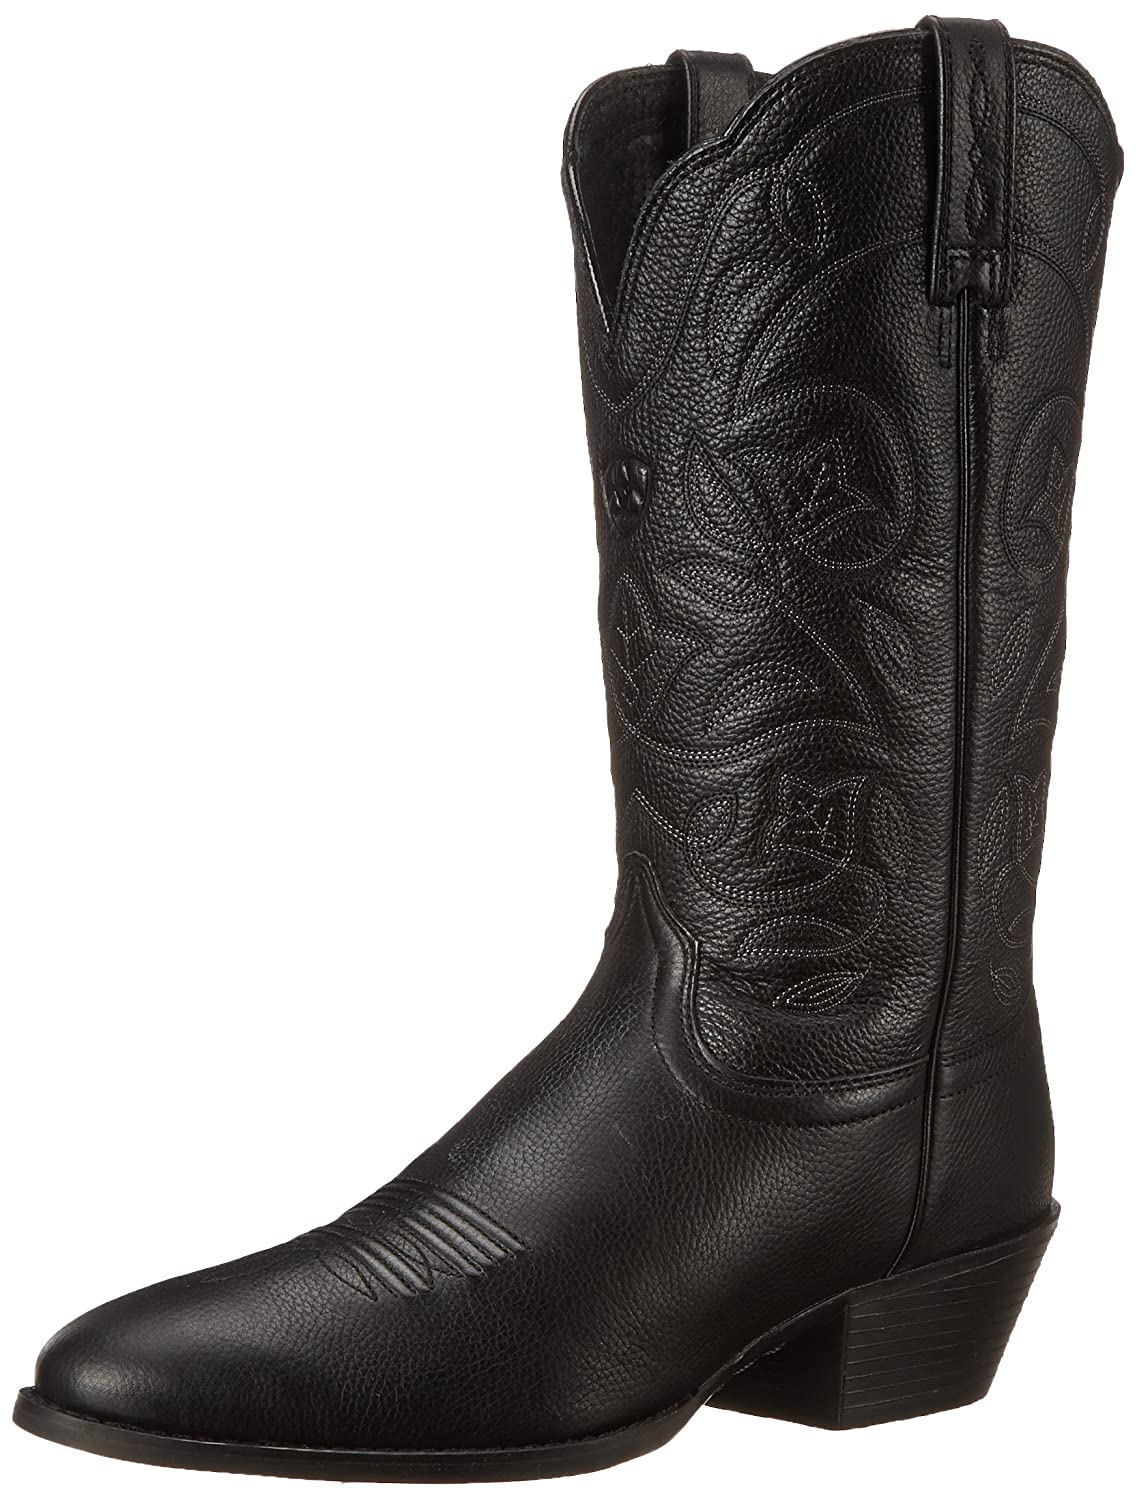 Ariat Women's Heritage Western R Toe Western Cowboy Boot B000EM186Y 6 B(M) US|Black Deer Tan